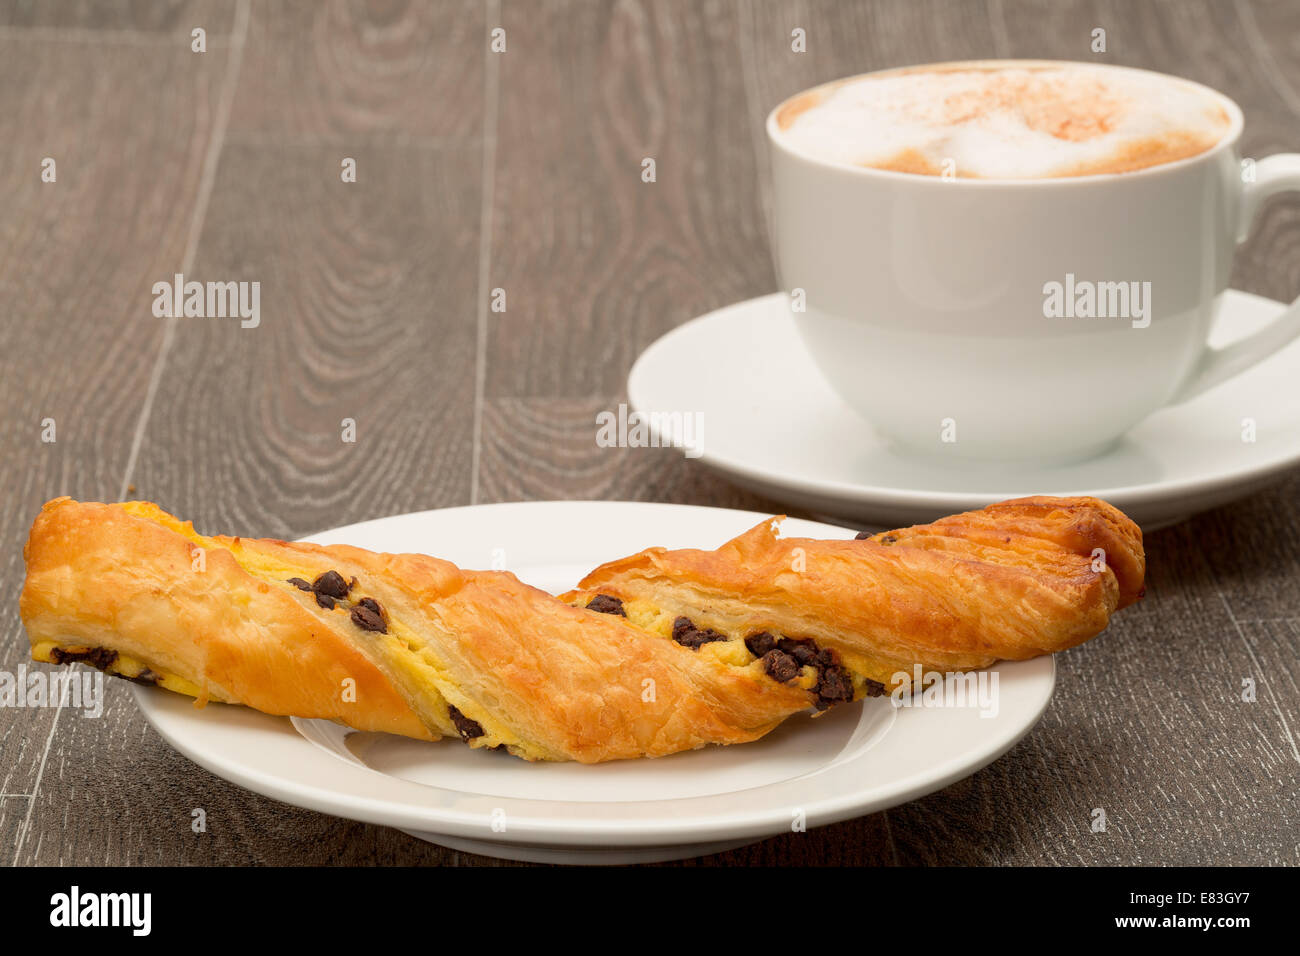 Authentic French chocolate twist pastry with a cappuccino coffee - studio shot and a shallow depth of field - Stock Image